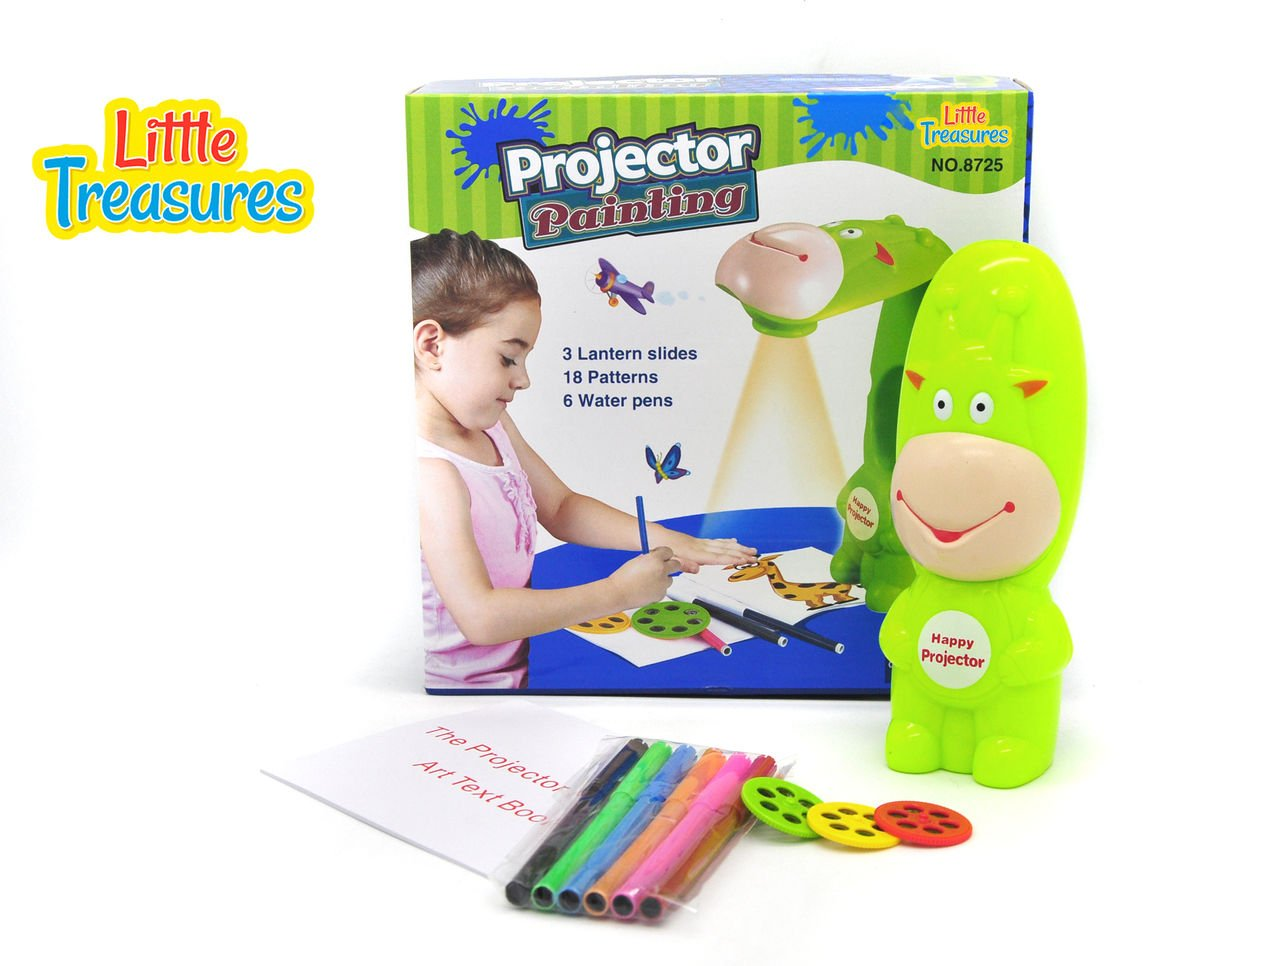 Little Treasures Projector Painting Set, Trace and Draw Little Artist Play Set